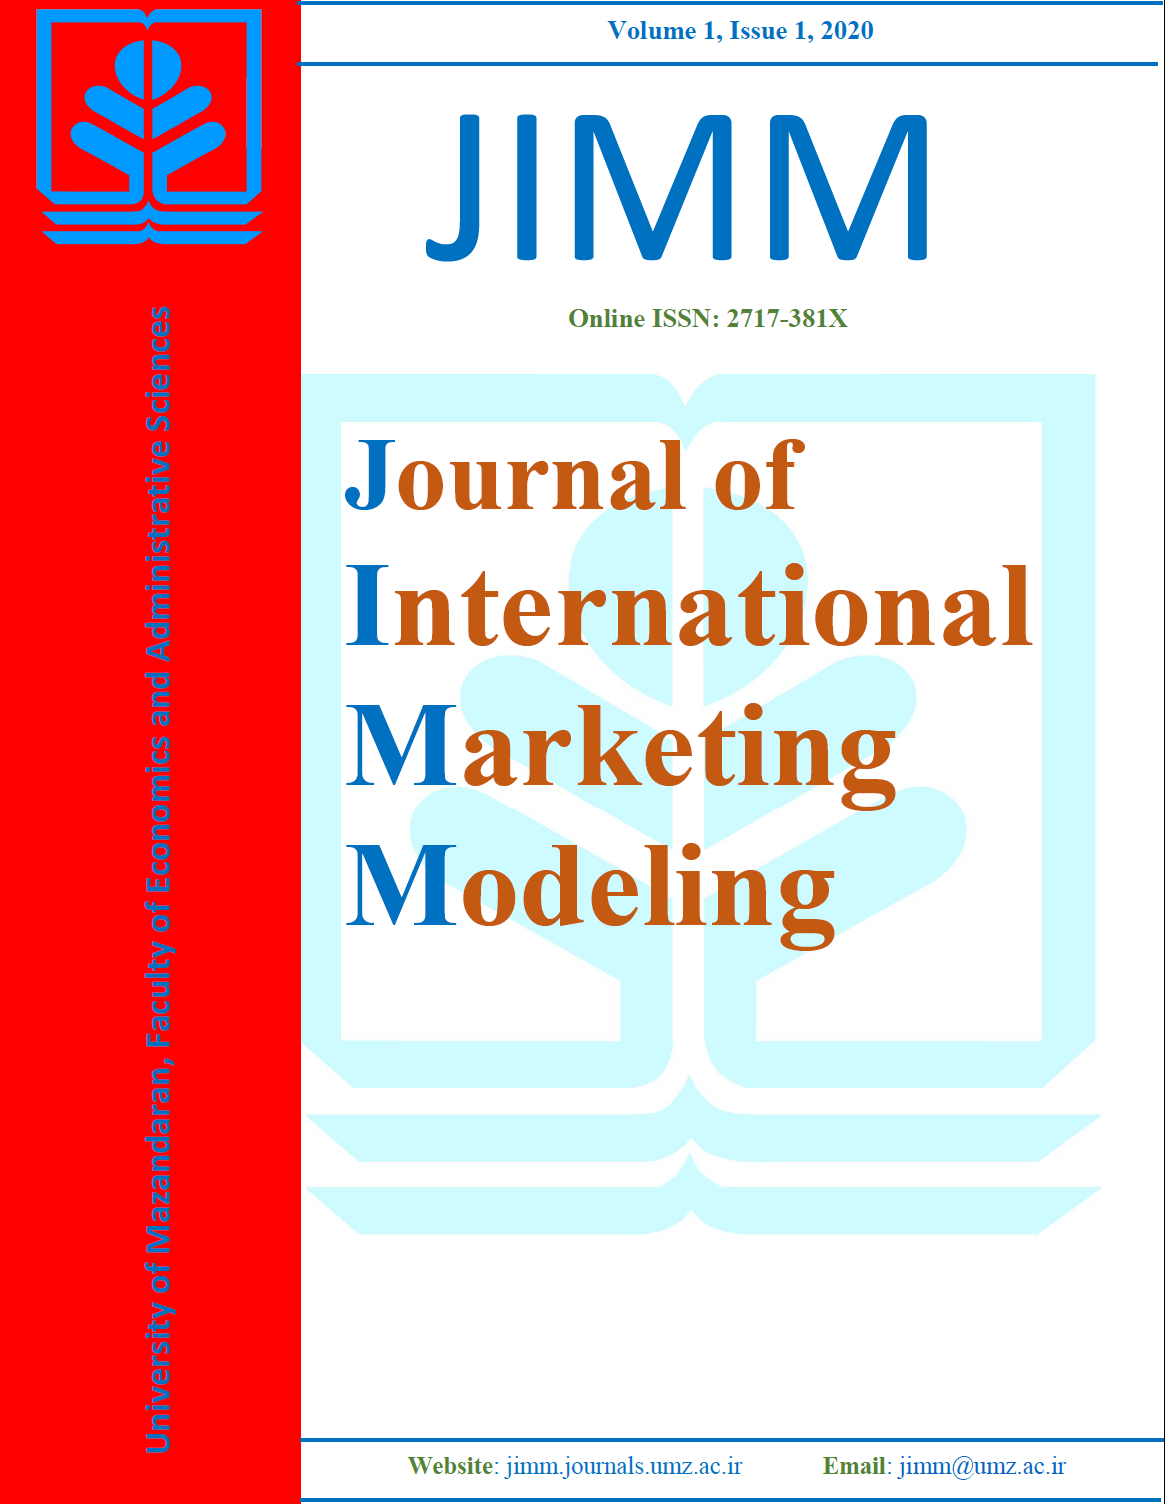 Journal of International Marketing Modeling